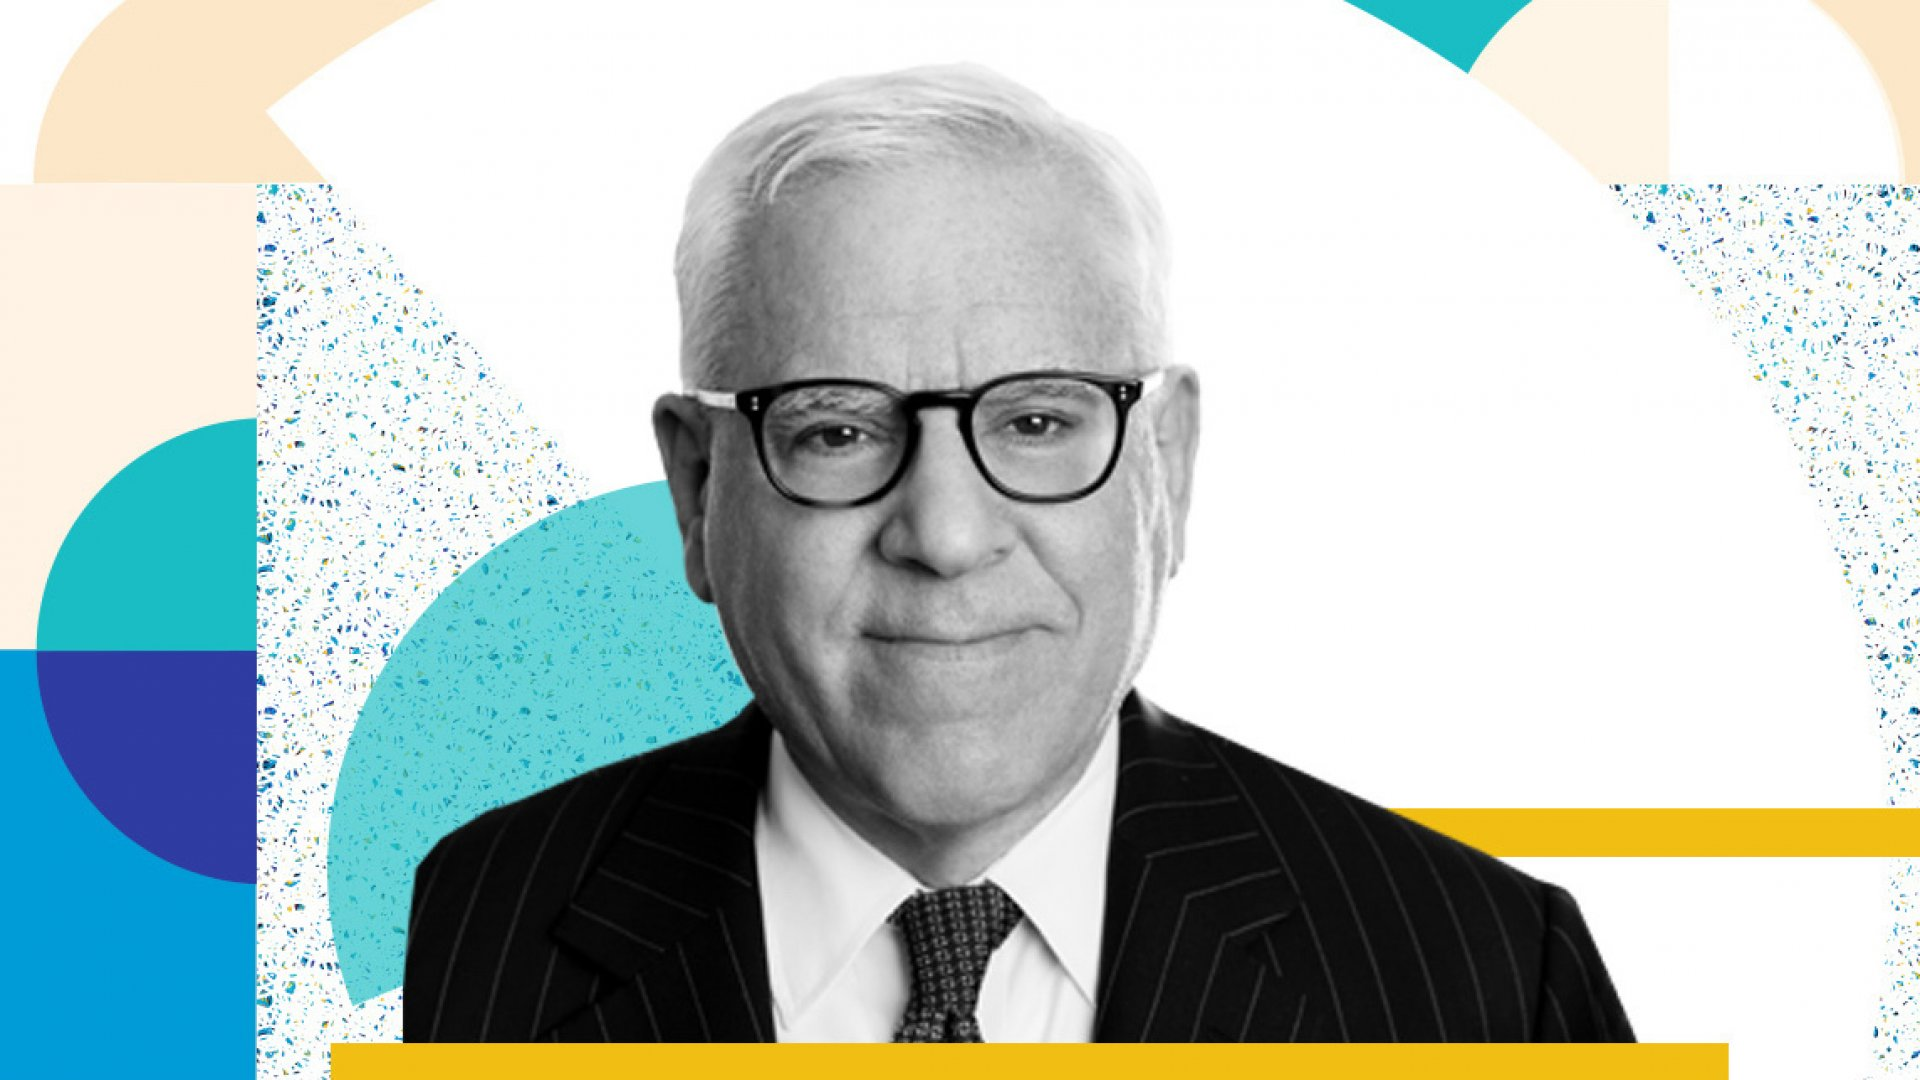 Business Icon David Rubenstein of Carlyle on What Makes a Good Leader